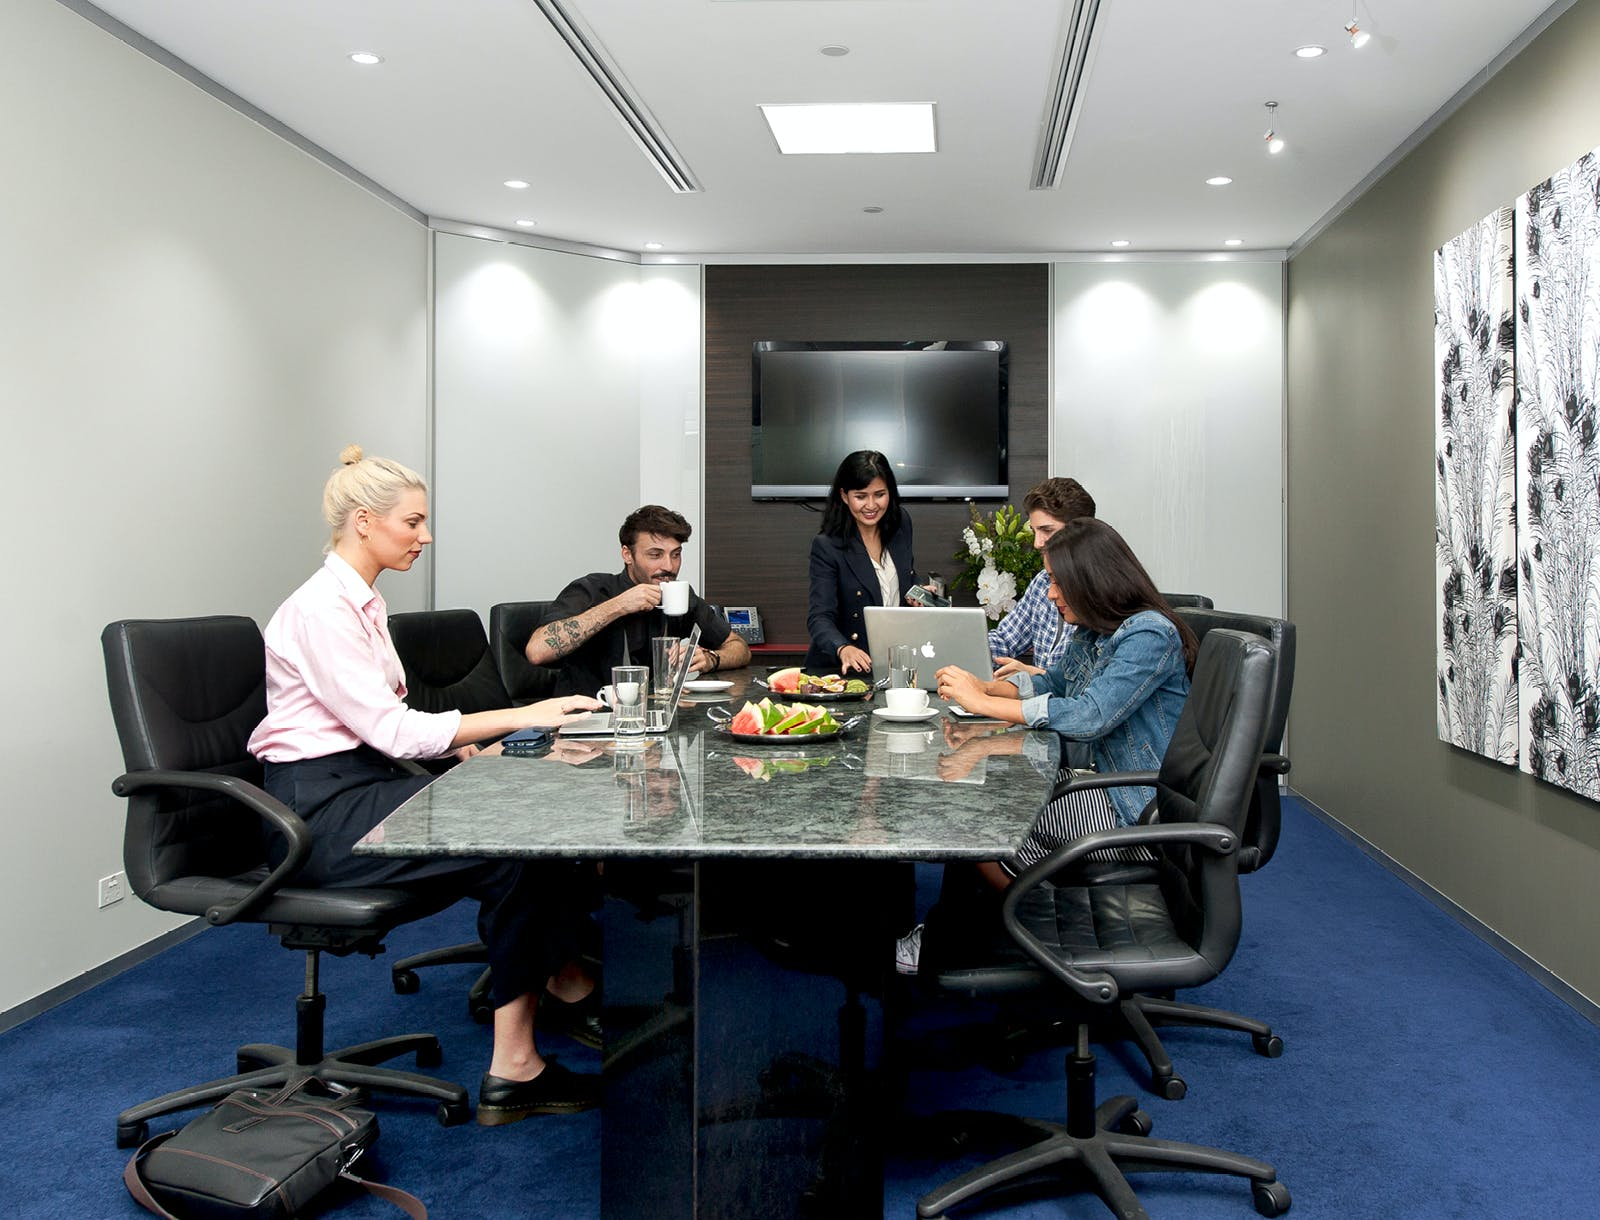 Coworking, coworking at Servcorp Reserve Bank Building, image 5